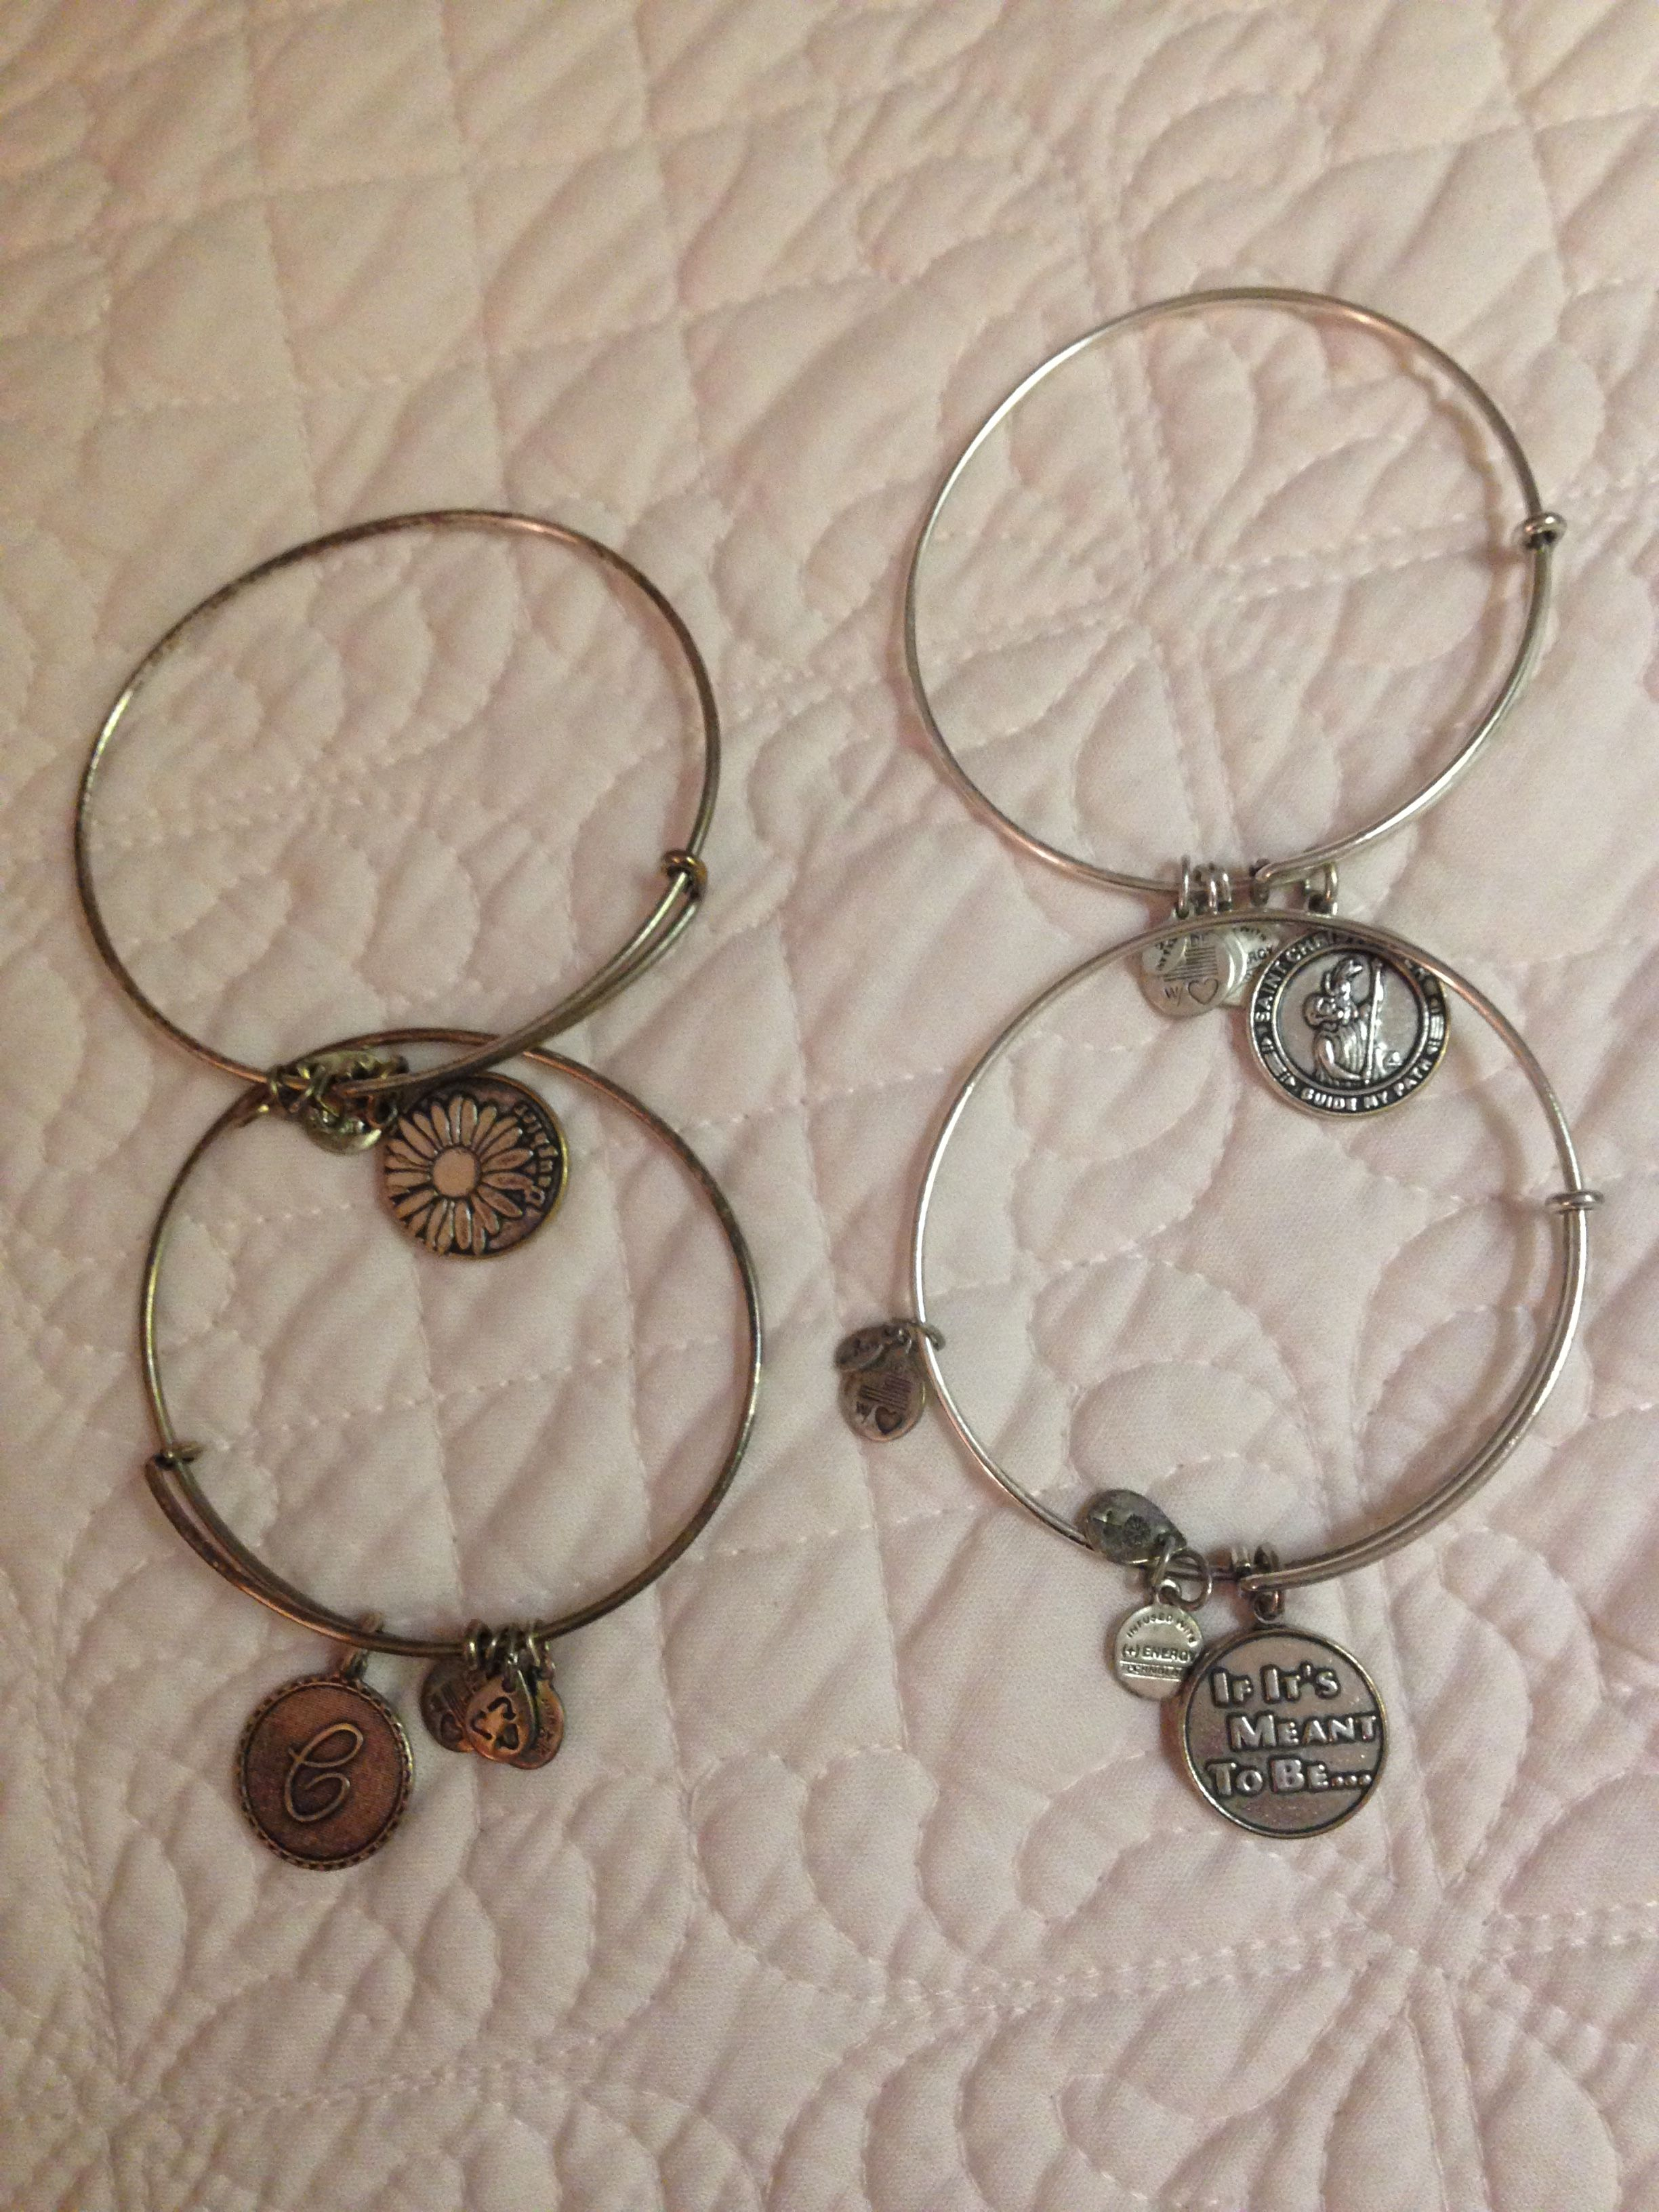 Alex And Ani Bracelets On Right Have Been Cleaned With Baking Soda Line Dish With Alumin Alex And Ani Bracelets Alex And Ani Necklaces Cleaning Silver Jewelry